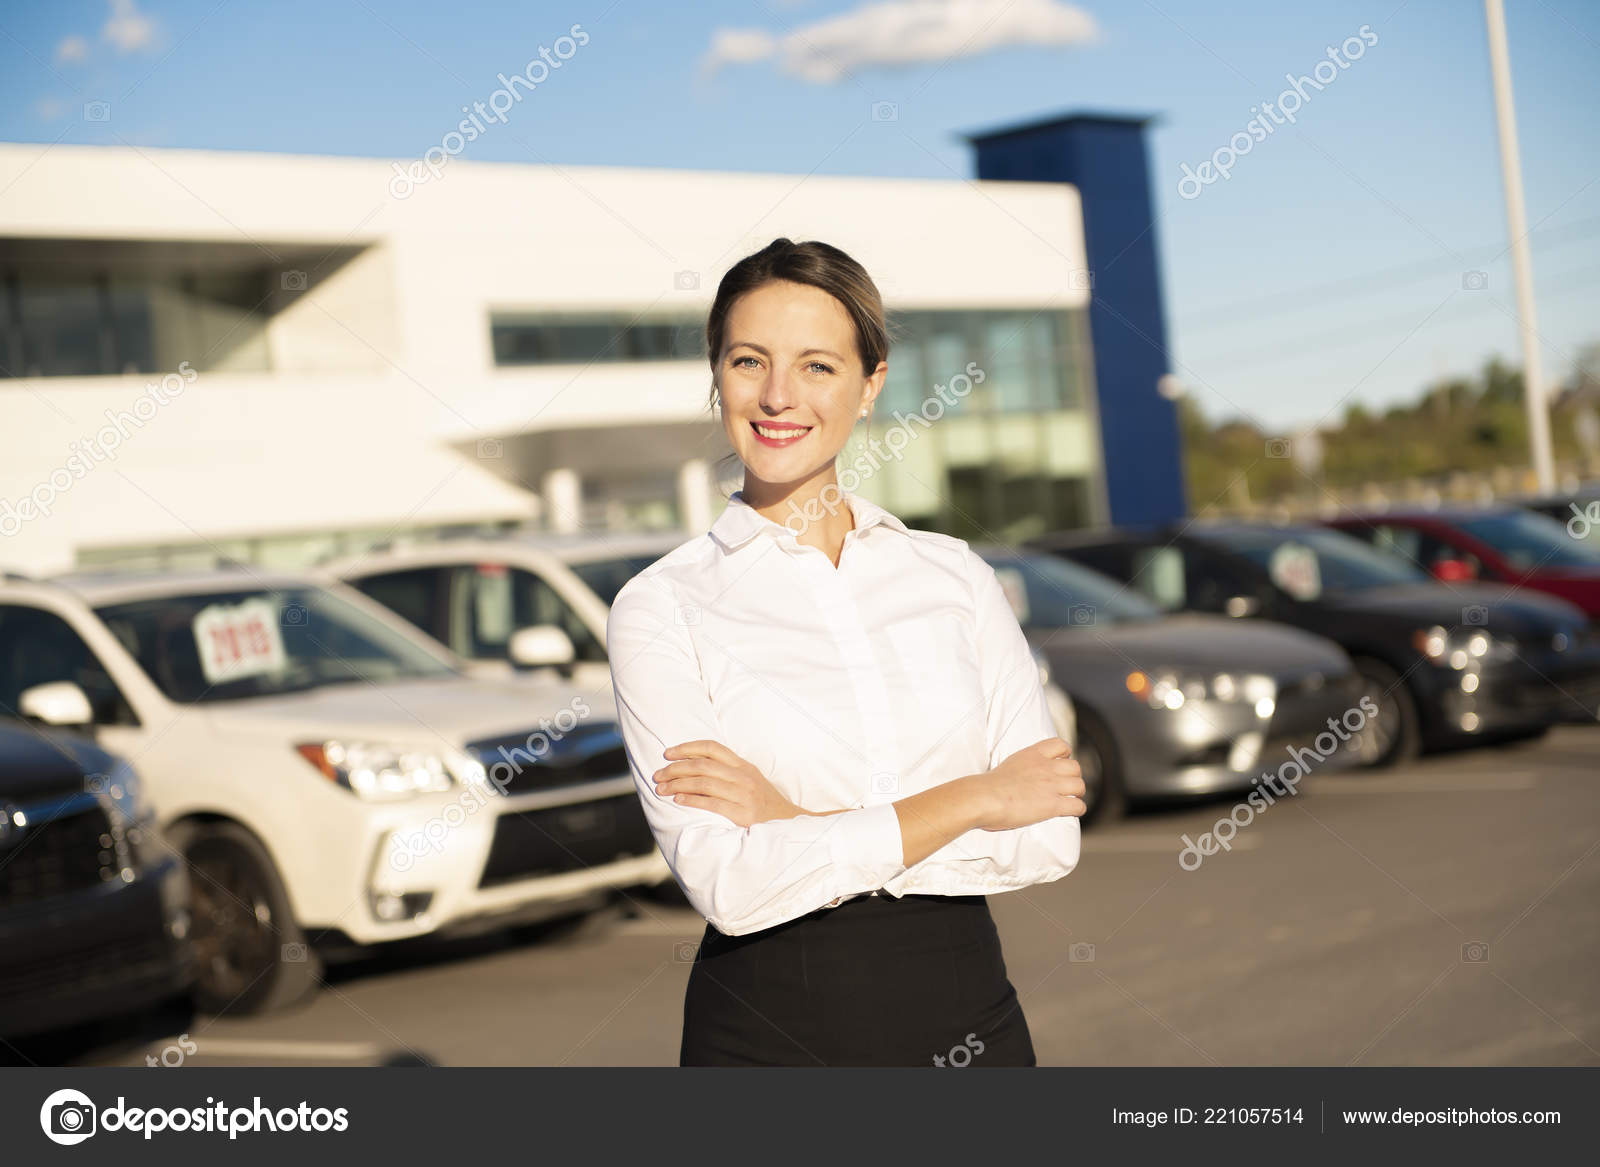 Young Woman Car Rental In Front Of Garage With Cars On The